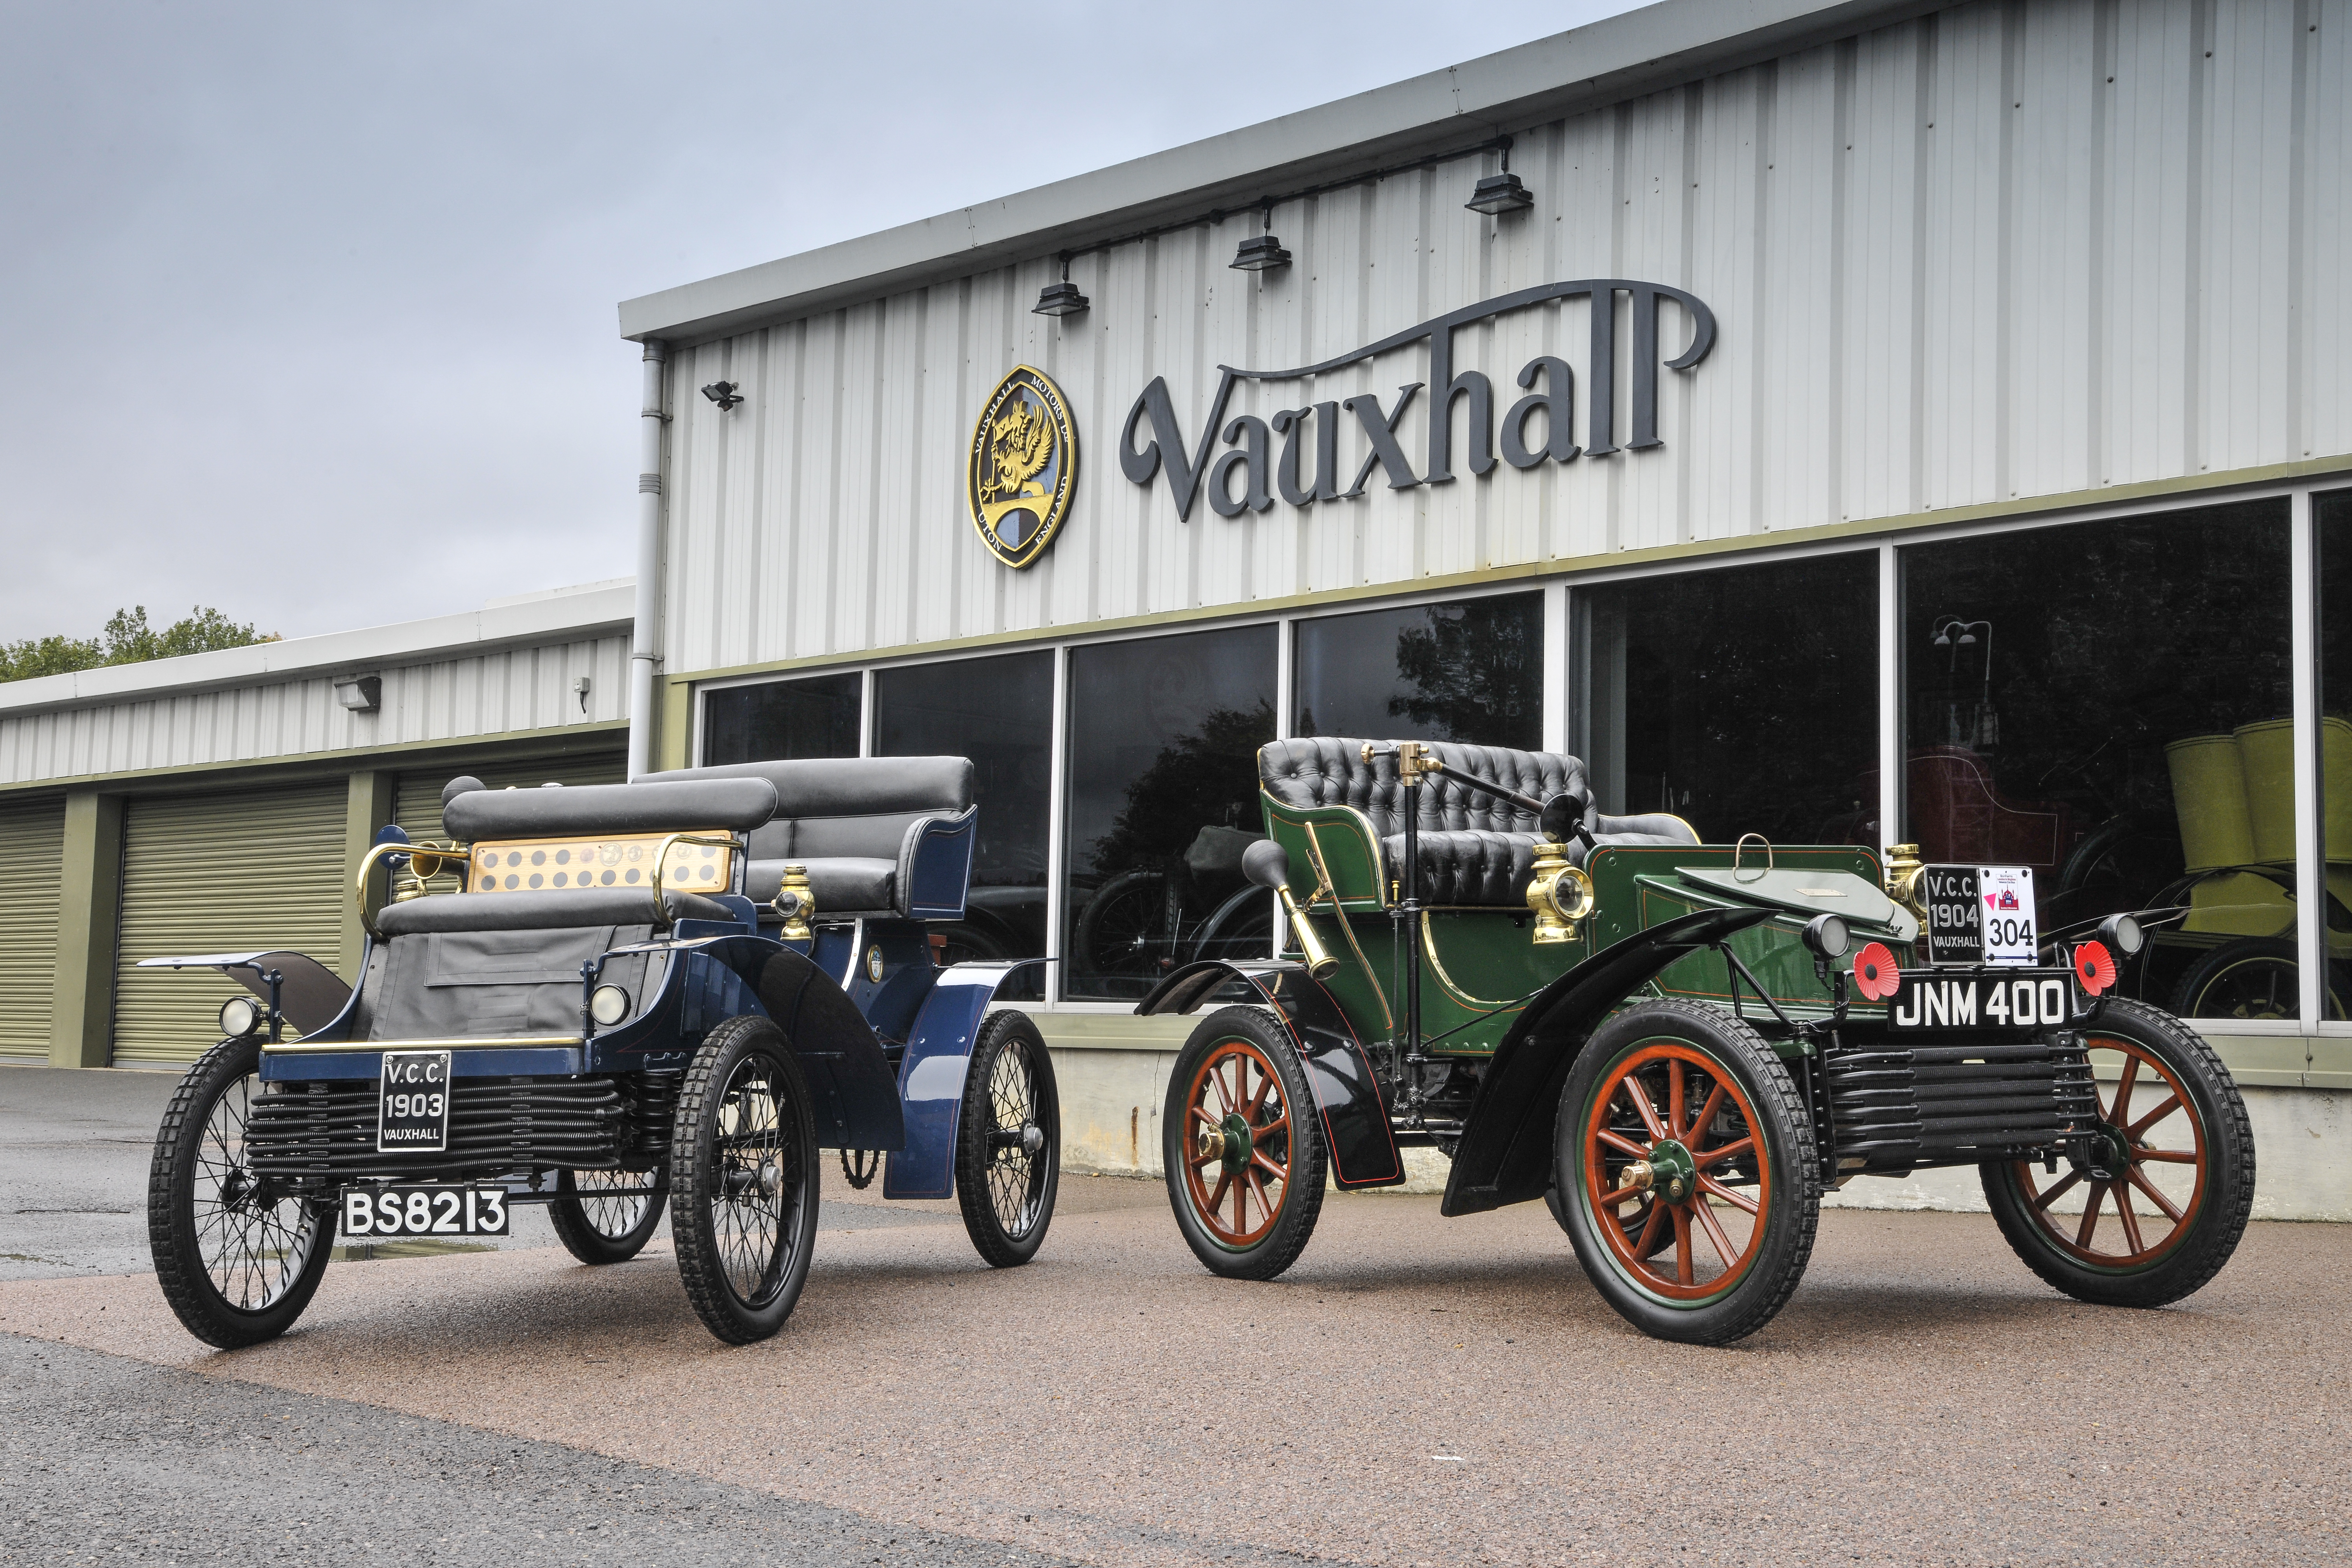 3. Vauxhall Heritage Collection